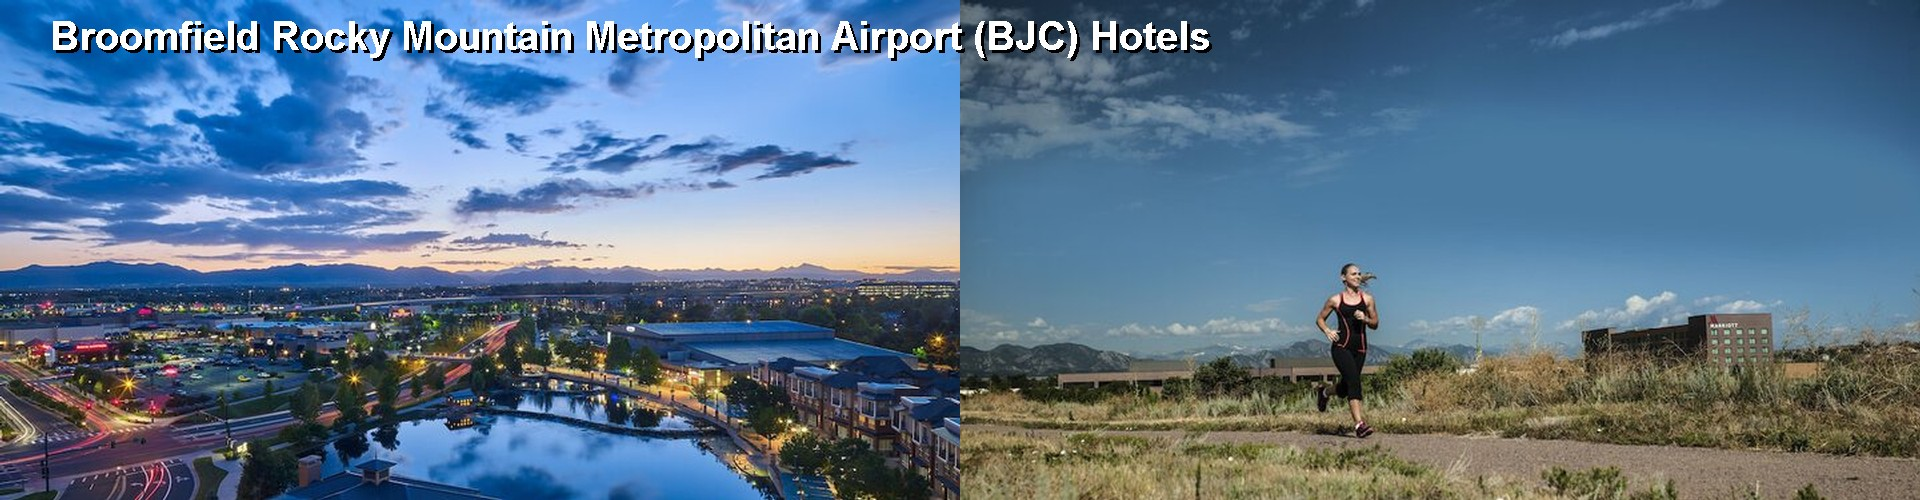 5 Best Hotels near Broomfield Rocky Mountain Metropolitan Airport (BJC)